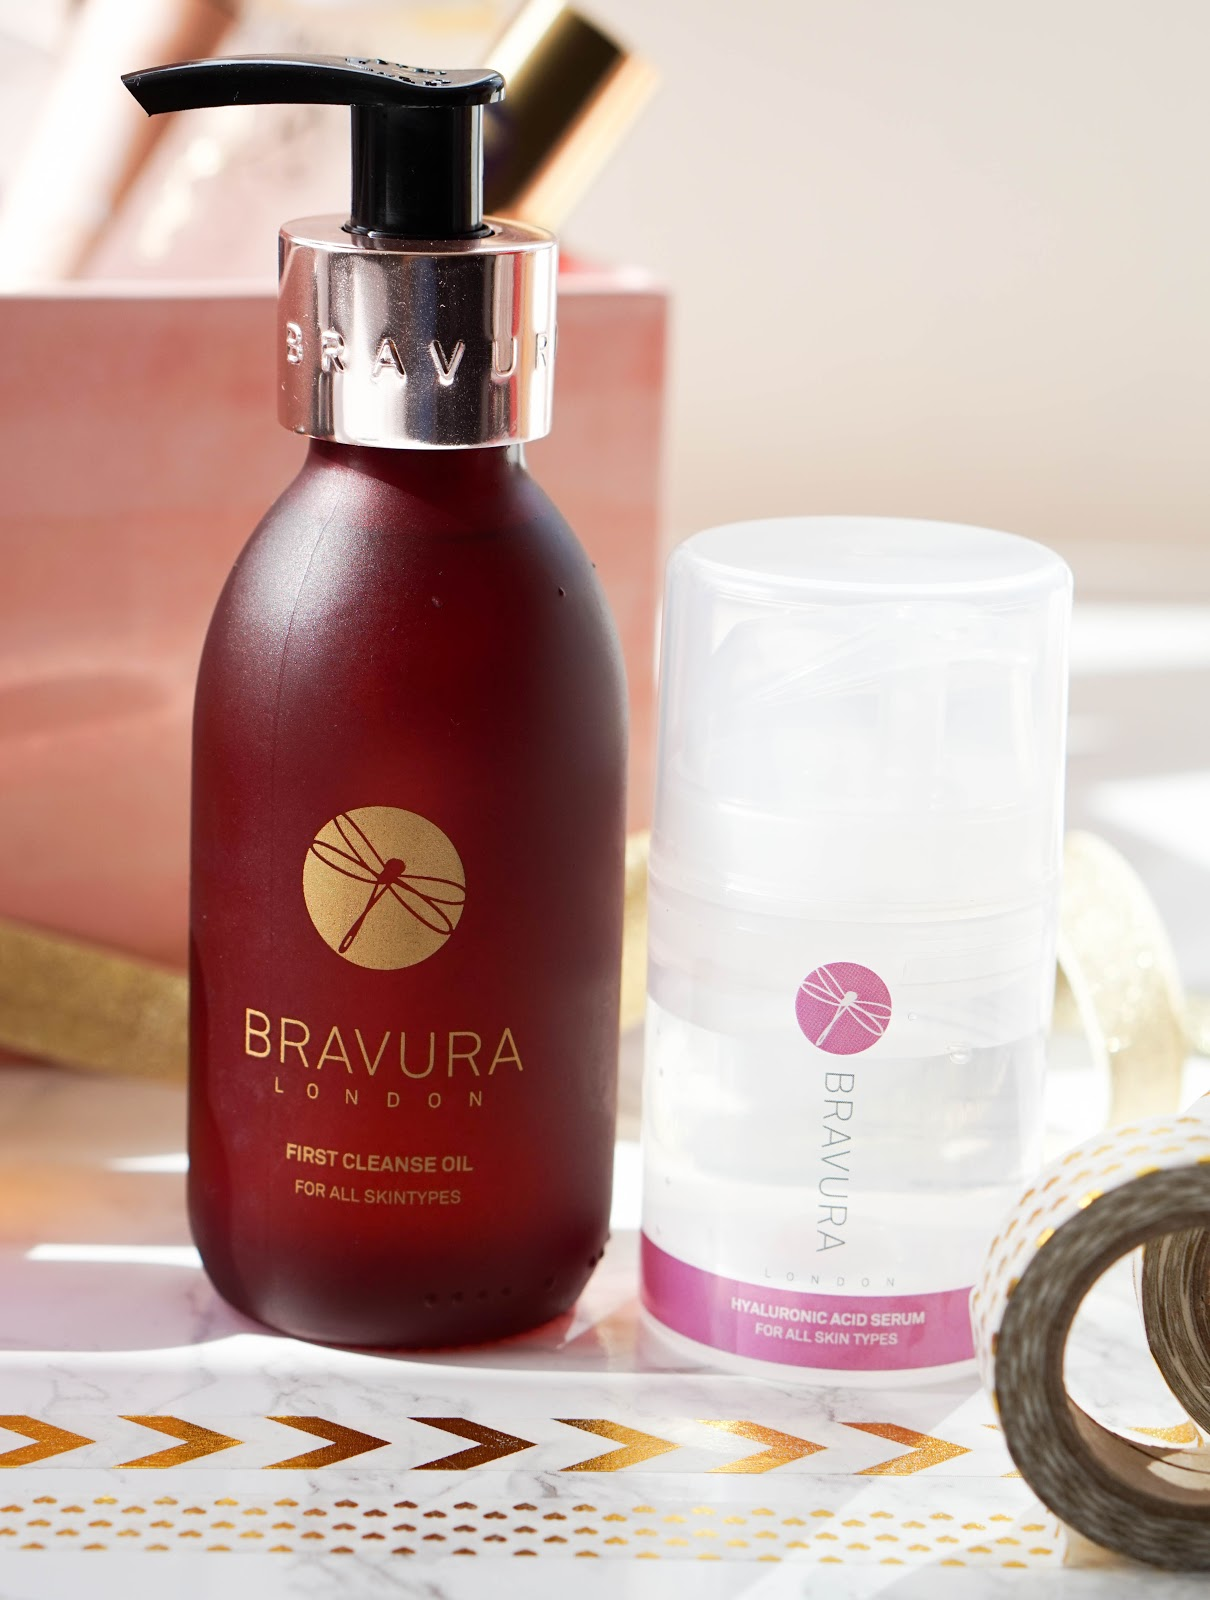 PR Unboxing - The Beauty Edit featuring Bravura, Shop Skincare, Korres, Willowberry, Caudal and 7th Heaven..